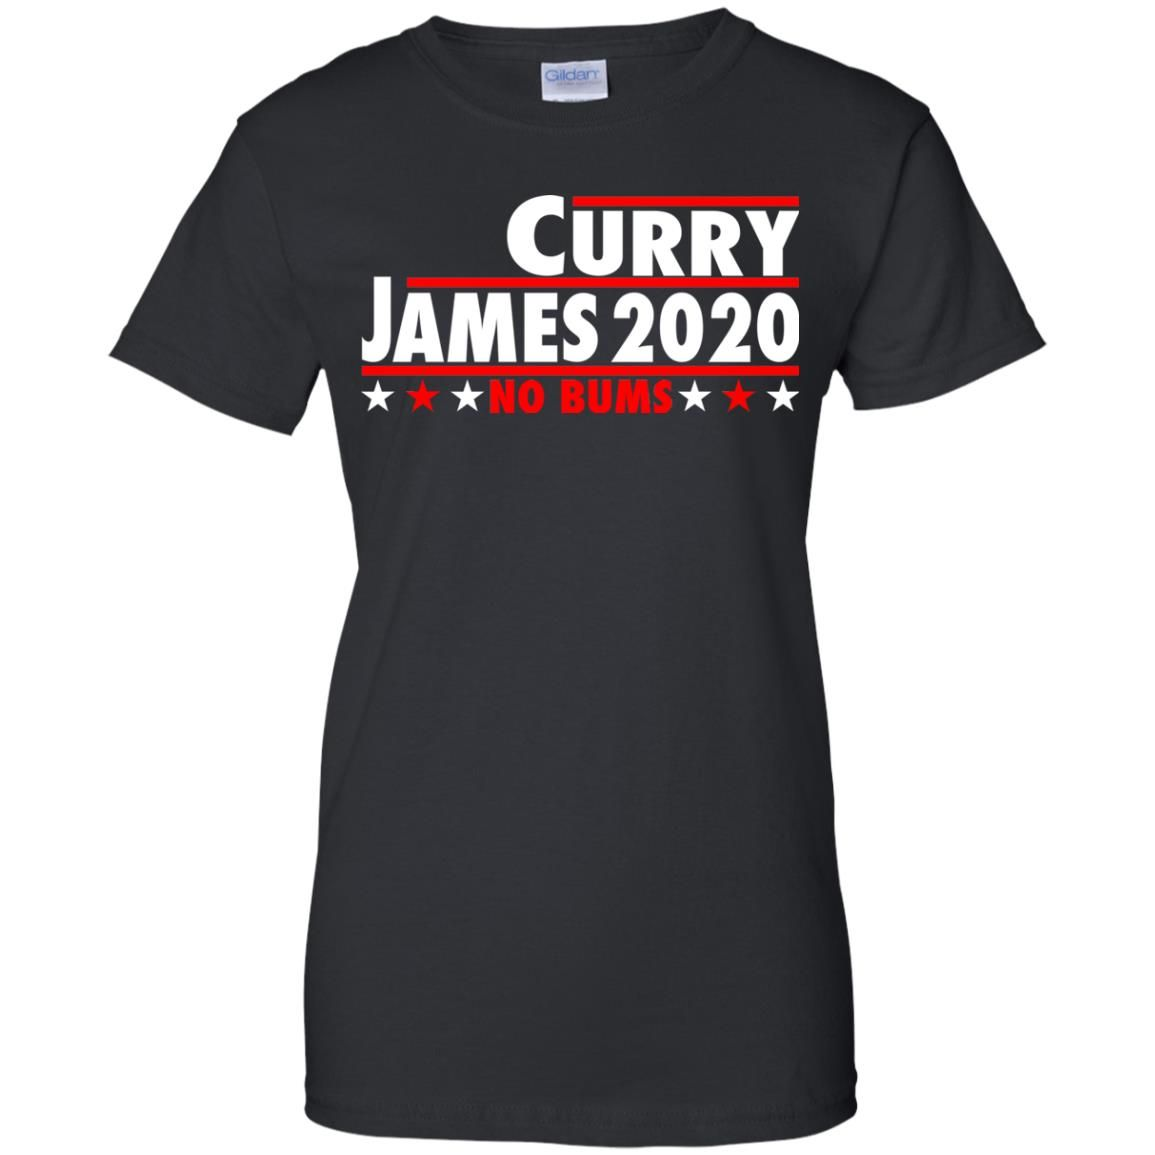 image 2030 - Curry Jame 2020 for President shirt